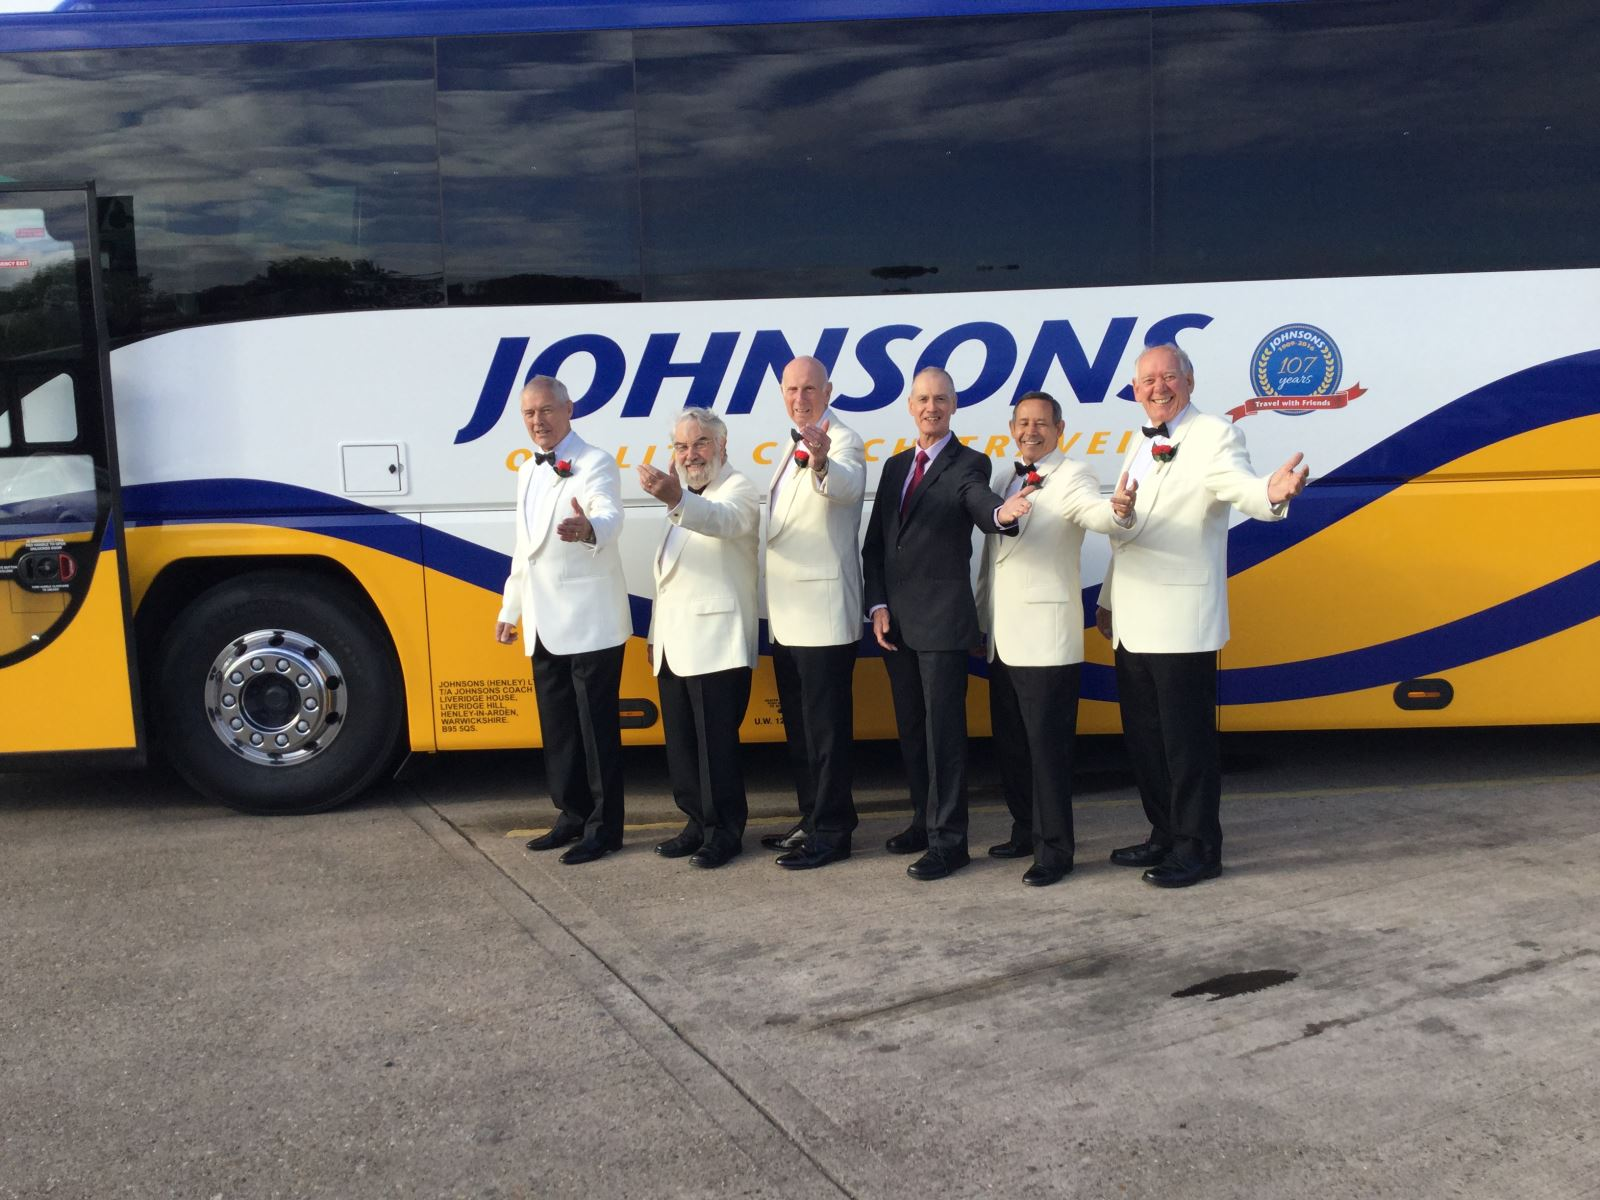 Alcester Male Voice Choir at Johnsons 2016